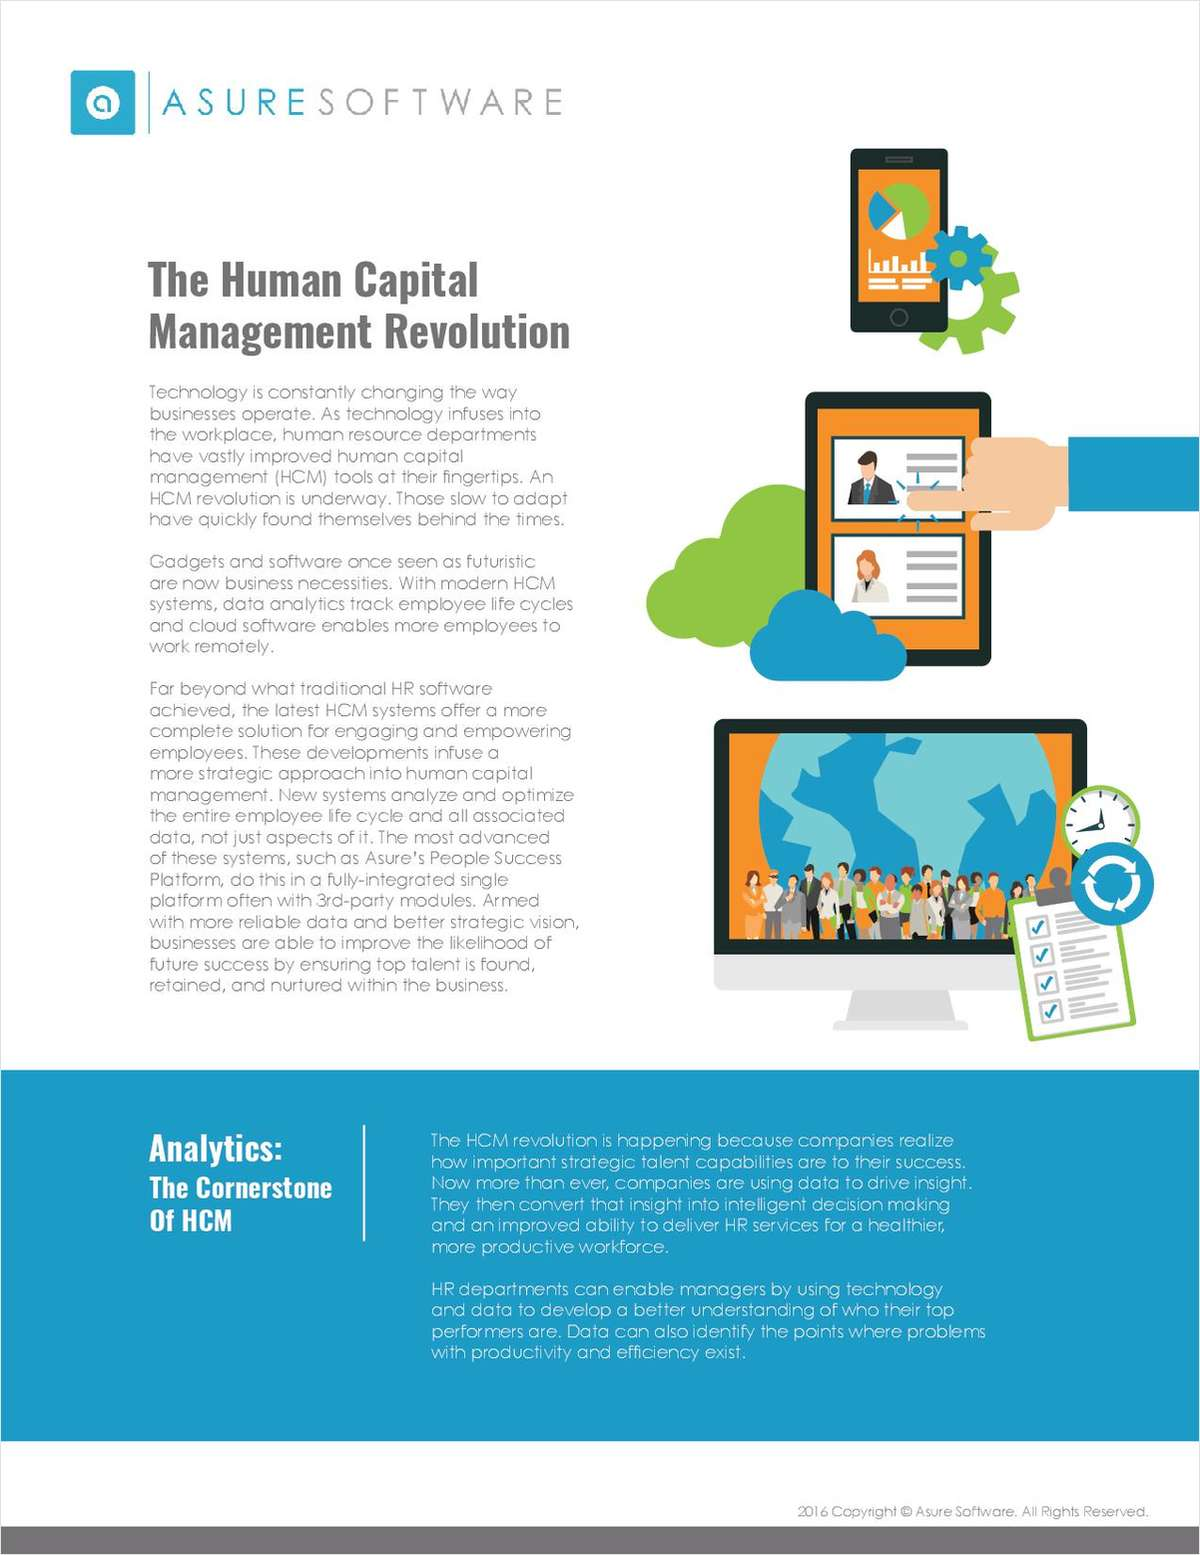 The Human Capital Management Revolution